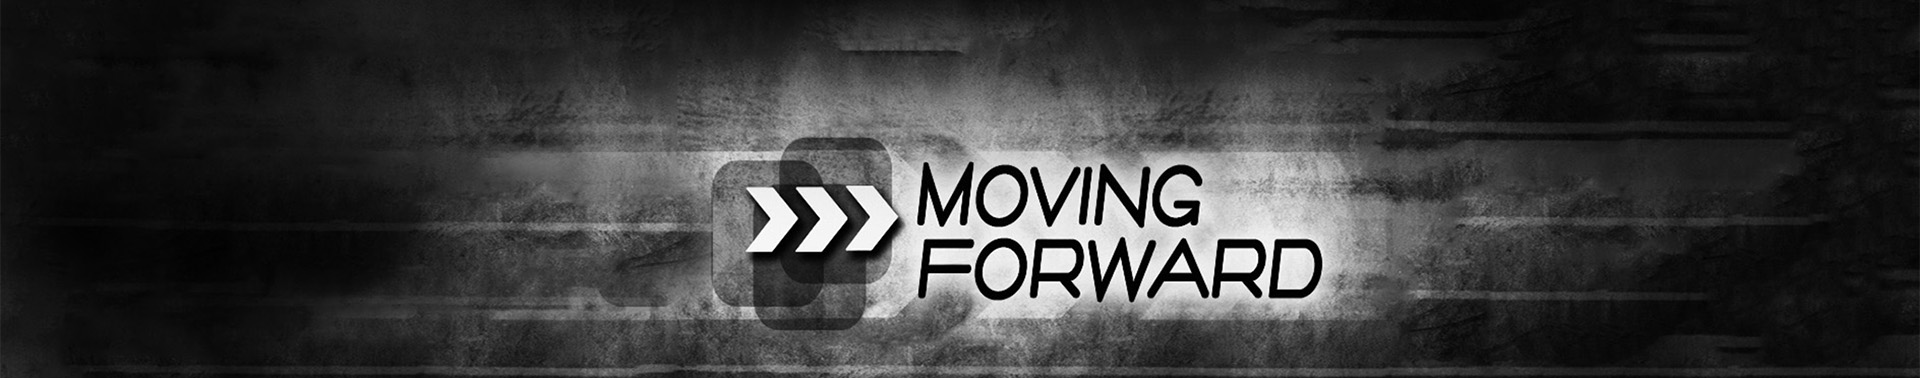 moving forward-6